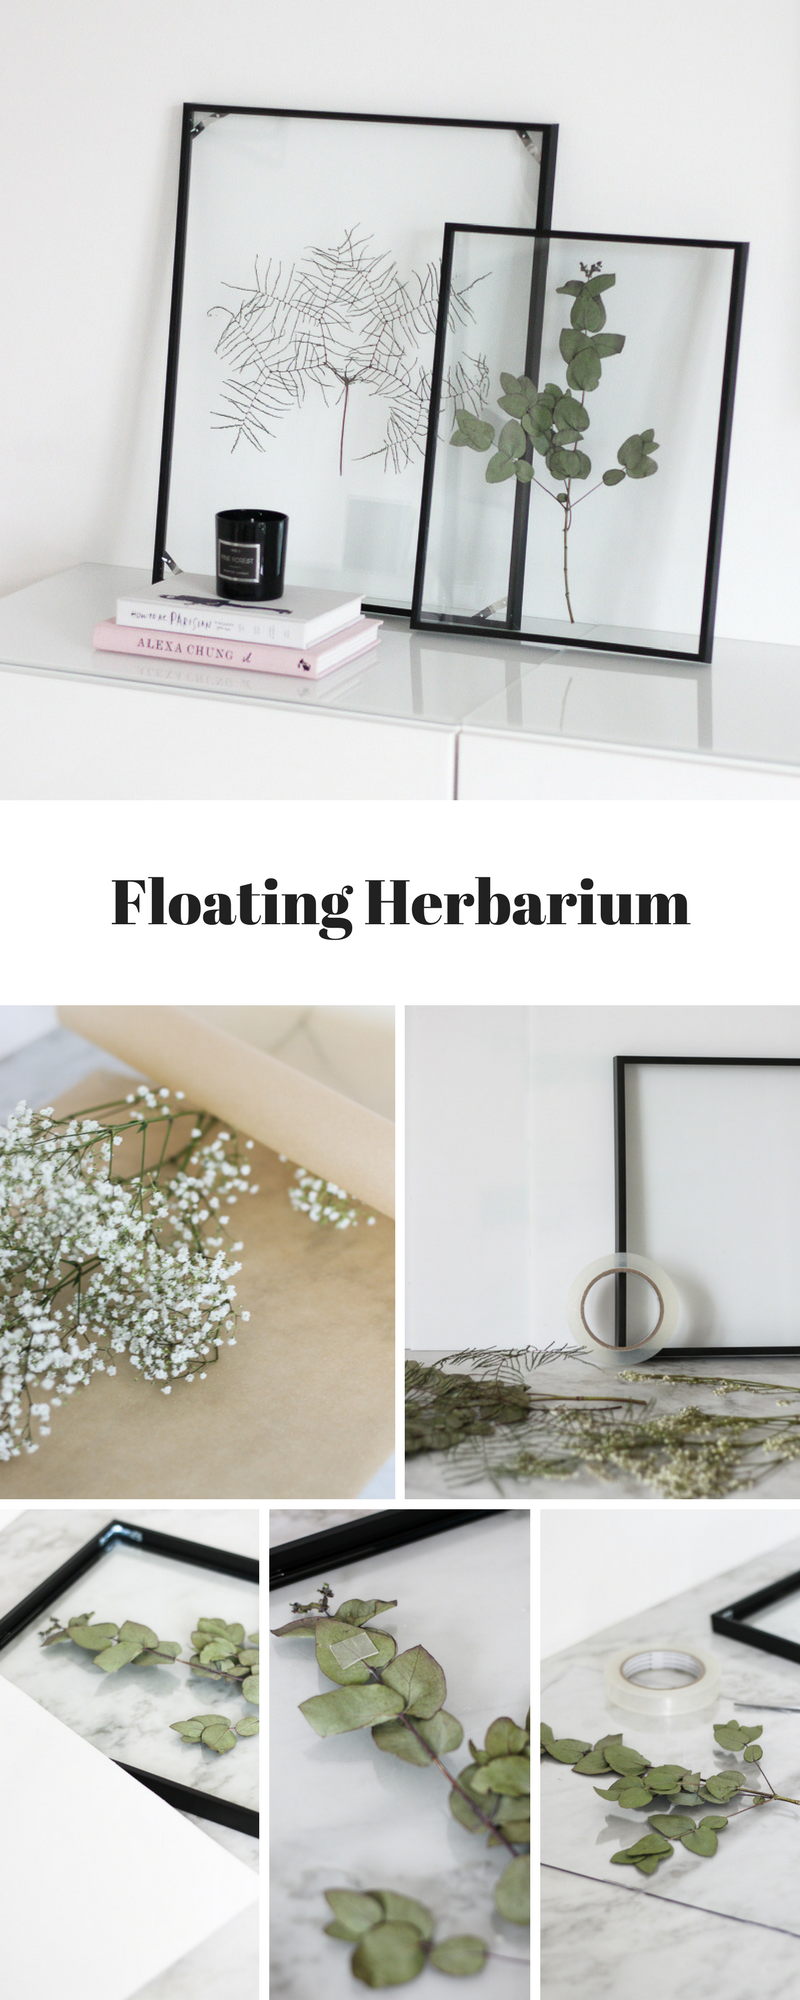 Photo of DIY: Floating Frame Herbarium – that's how you make the floating frame!